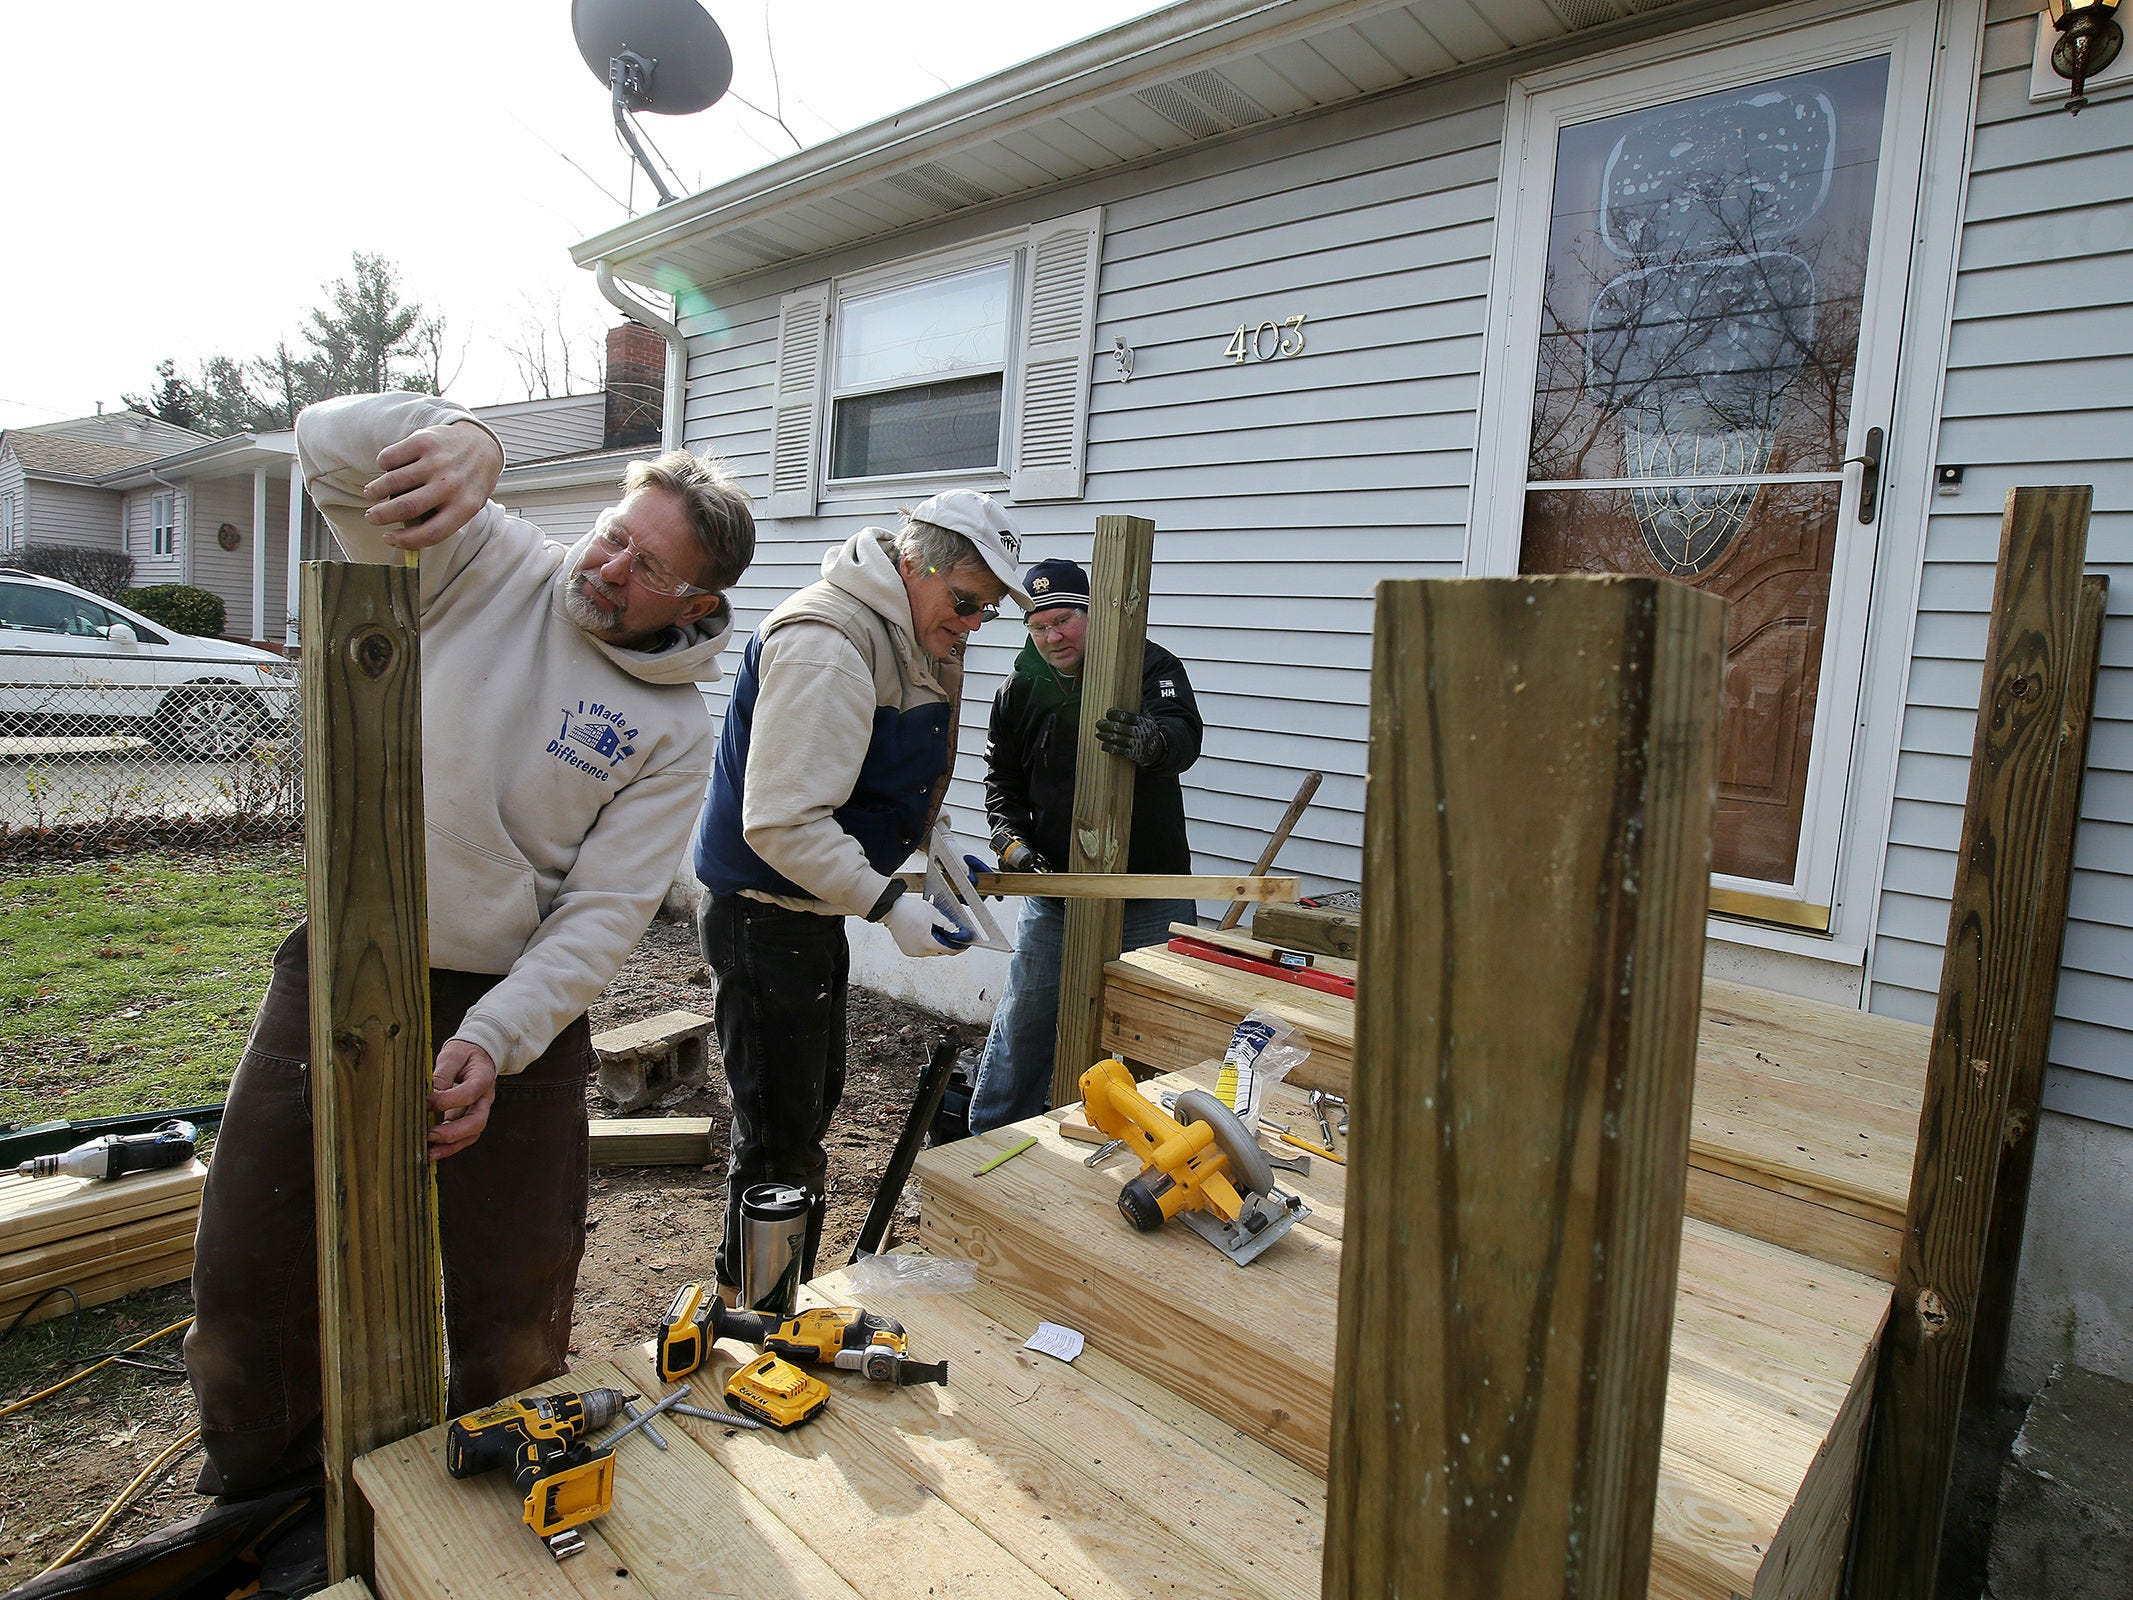 Bob Conway of Whiting, construction supervisor for Northern Ocean Habitat for Humanity, Jeff Dickert of New Egypt, volunteer for Northern Ocean Habitat for Humanity, and Jason Barger of Point Pleasant Boro, outside sales representative for Ferguson Enterprises, work on the home of Korean War veteran Walter Brandon, 85, and wife Patricia, which is Northern Ocean Habitat for Humanity's 200th home repair, in Brick, NJ Thursday, December 6, 2018.